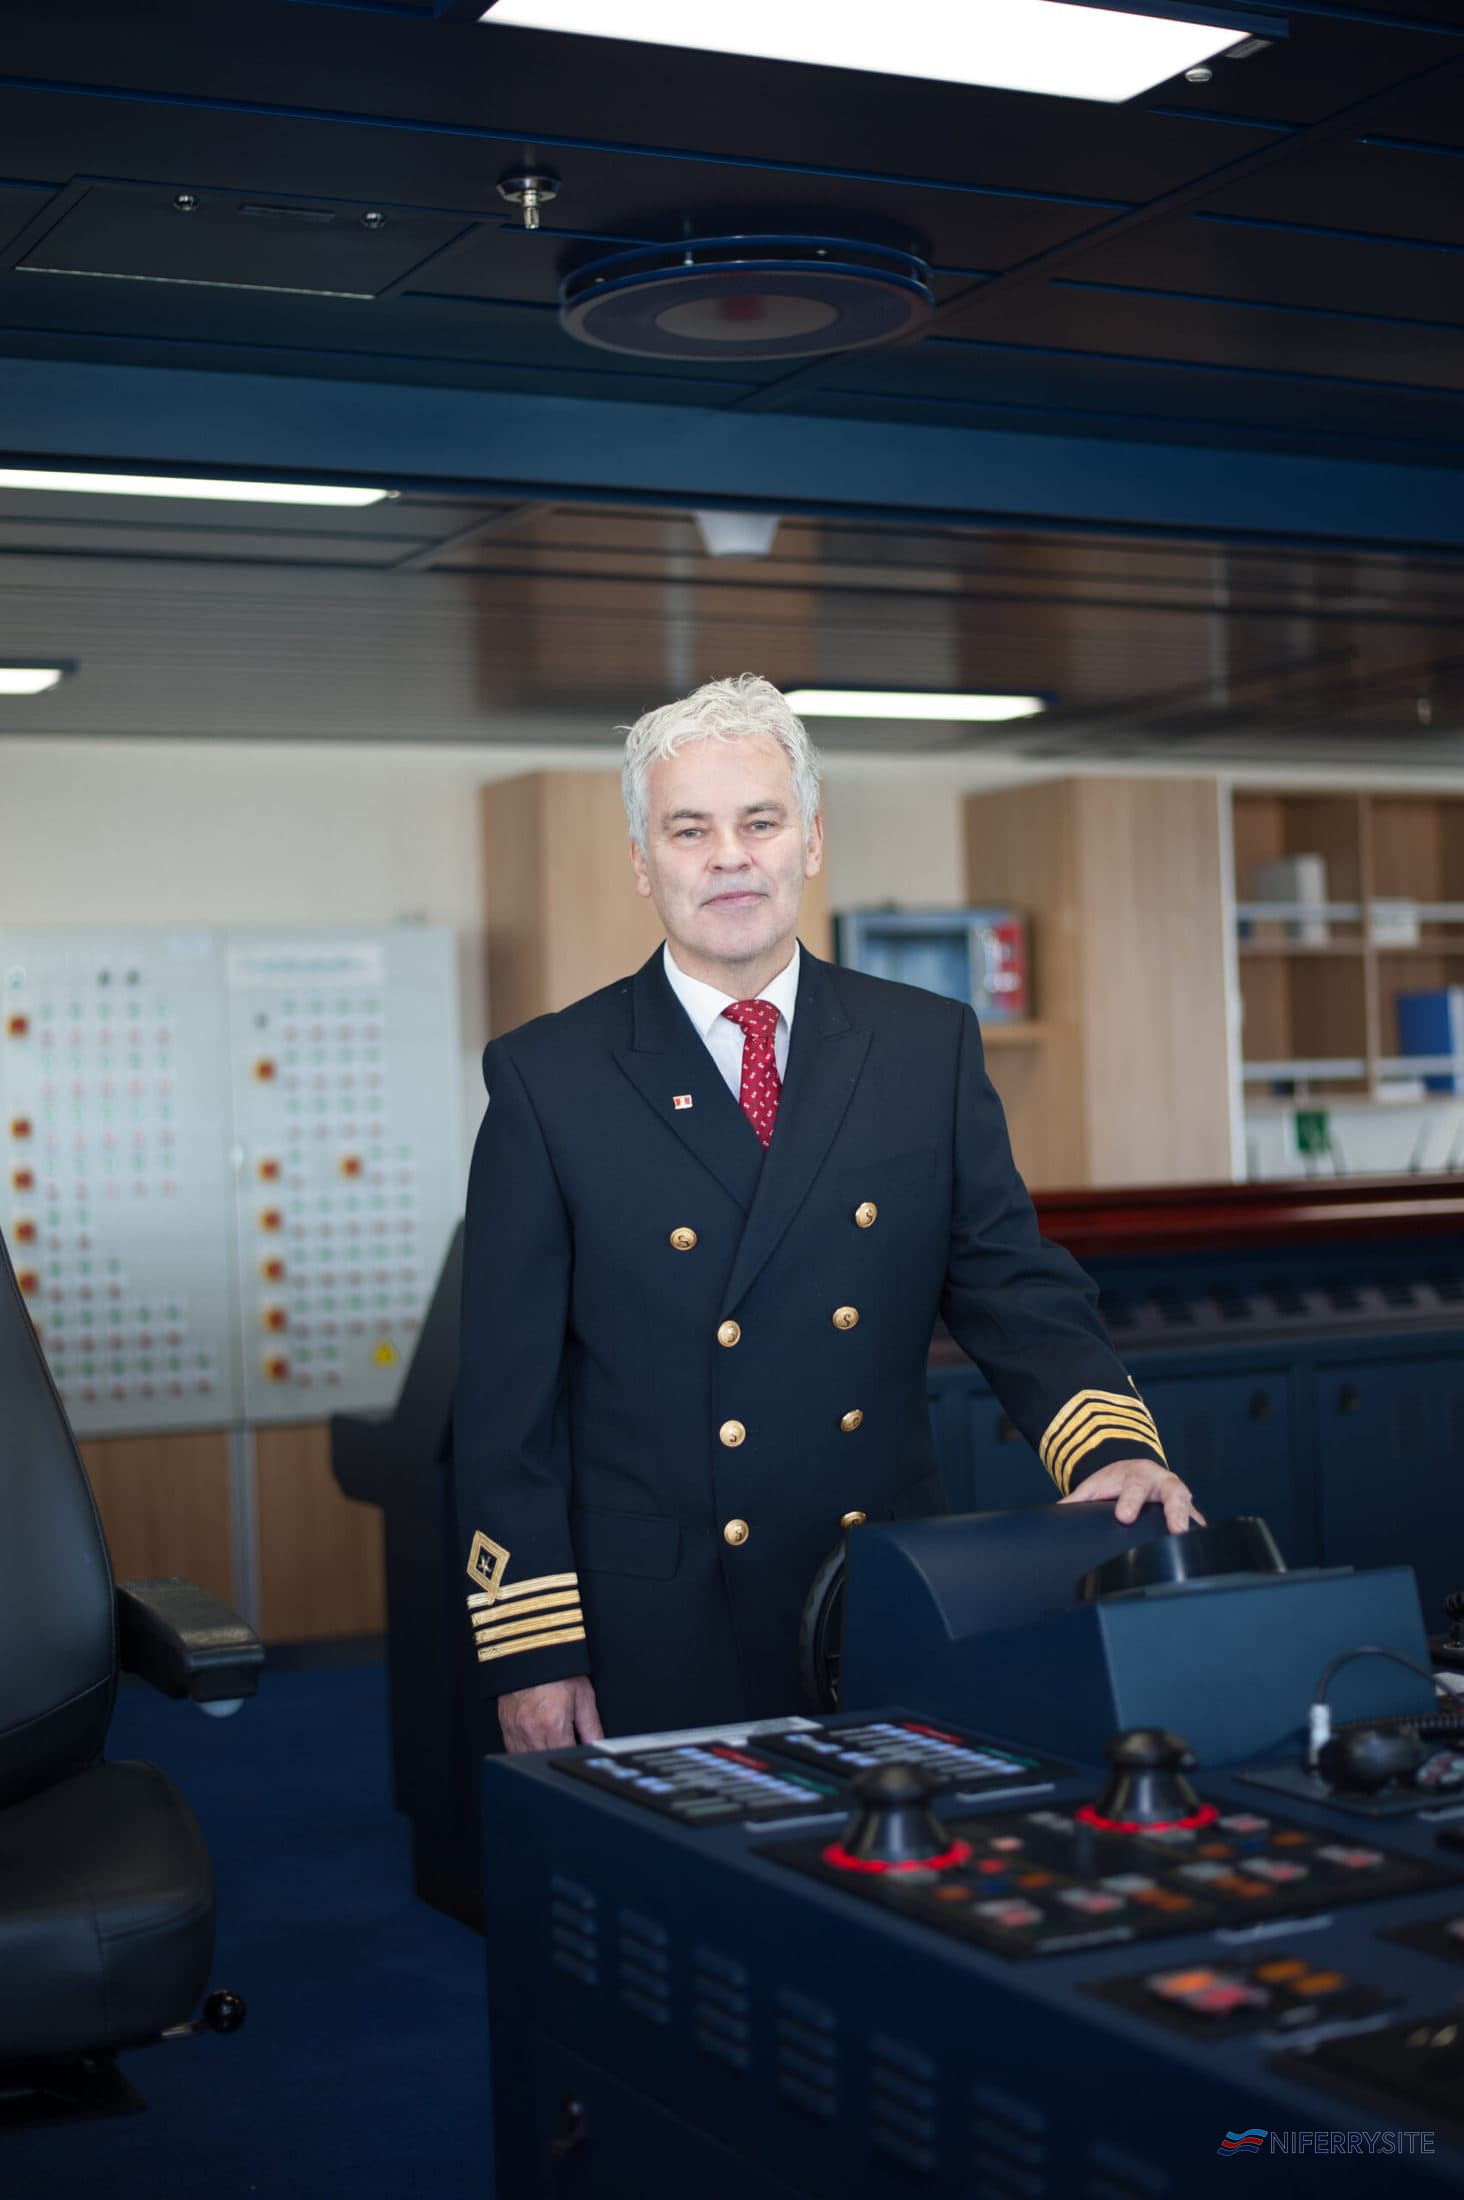 Senior Master Captain Neill Whittaker at the bridge of STENA EMBLA. Stena Line